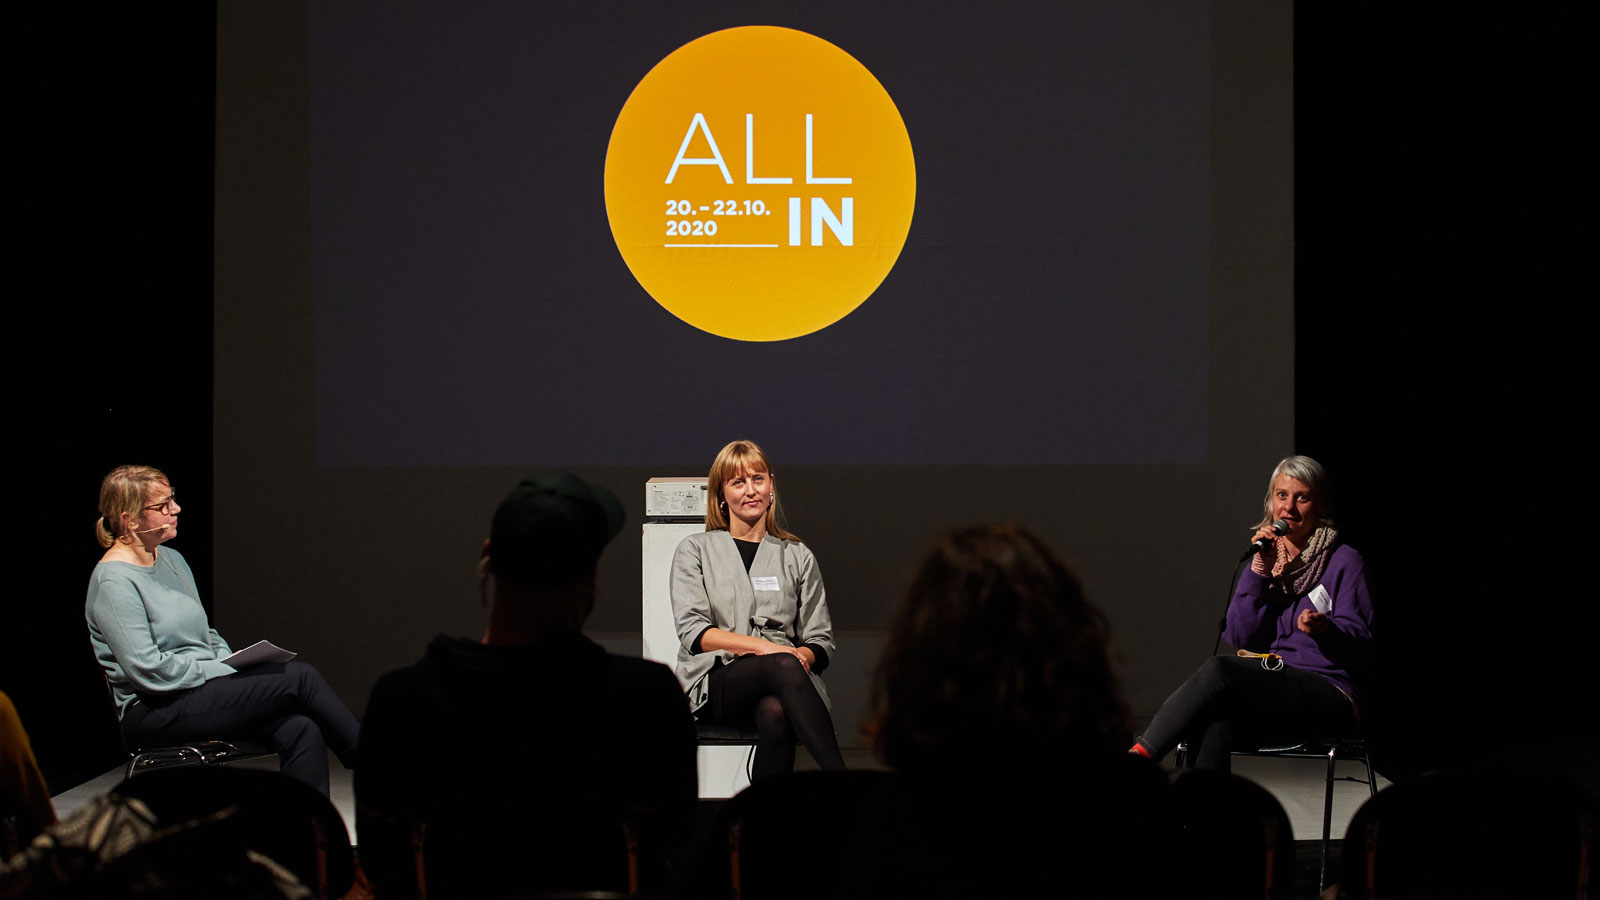 At the ALL IN Symposium. Three women sit in a semicircle on the stage. Behind them you can see the ALL IN logo. An orange circle with the text ALL IN 20 - 22.10.2020. ©Anna Spindelndreier